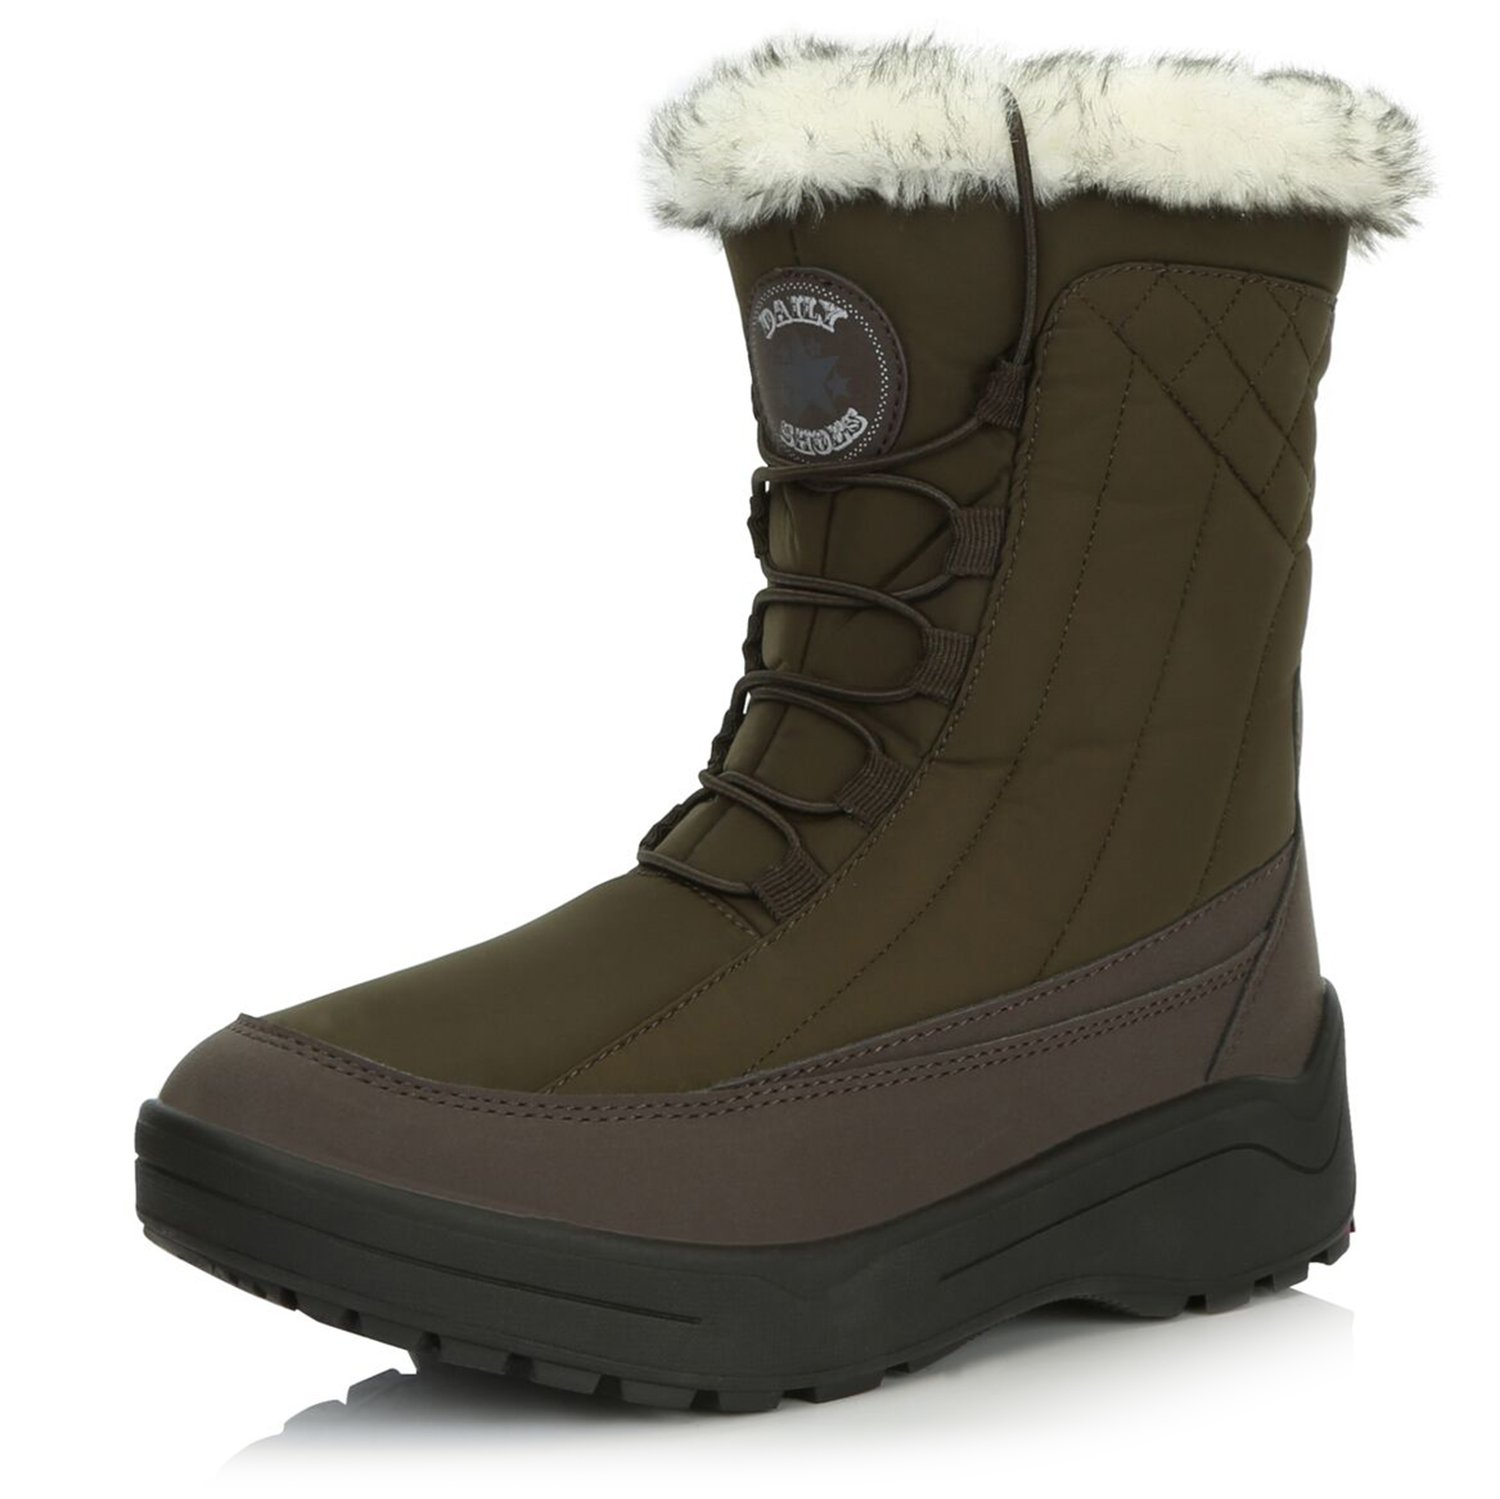 DailyShoes Alaska05 8'' Ankle Snow Boots Boot Winter Warm Short Lace Up Zippered Backpacking Cute Shoes Mid Calf Booties with Fur Trim Alaska-05 Brown Nylon 11 by DailyShoes